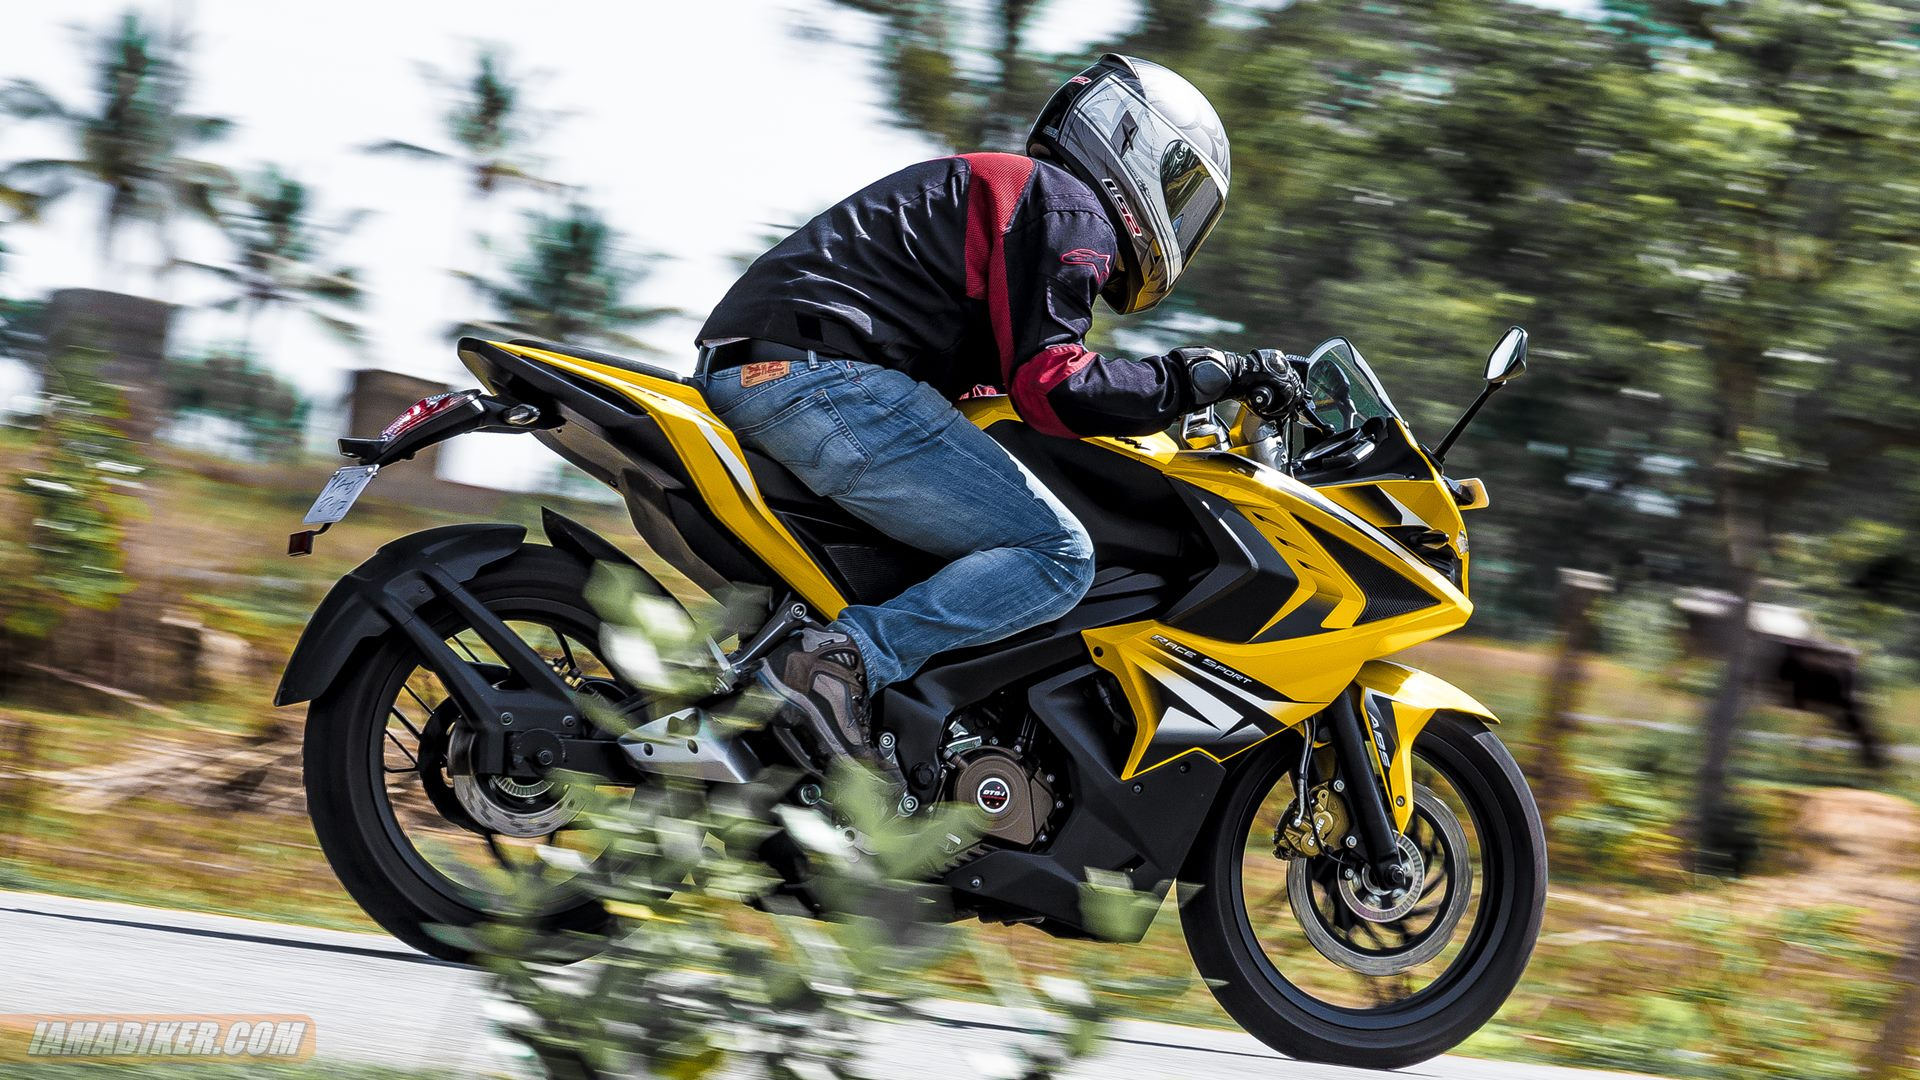 Pulsar RS 200 review engine, performance and mileage